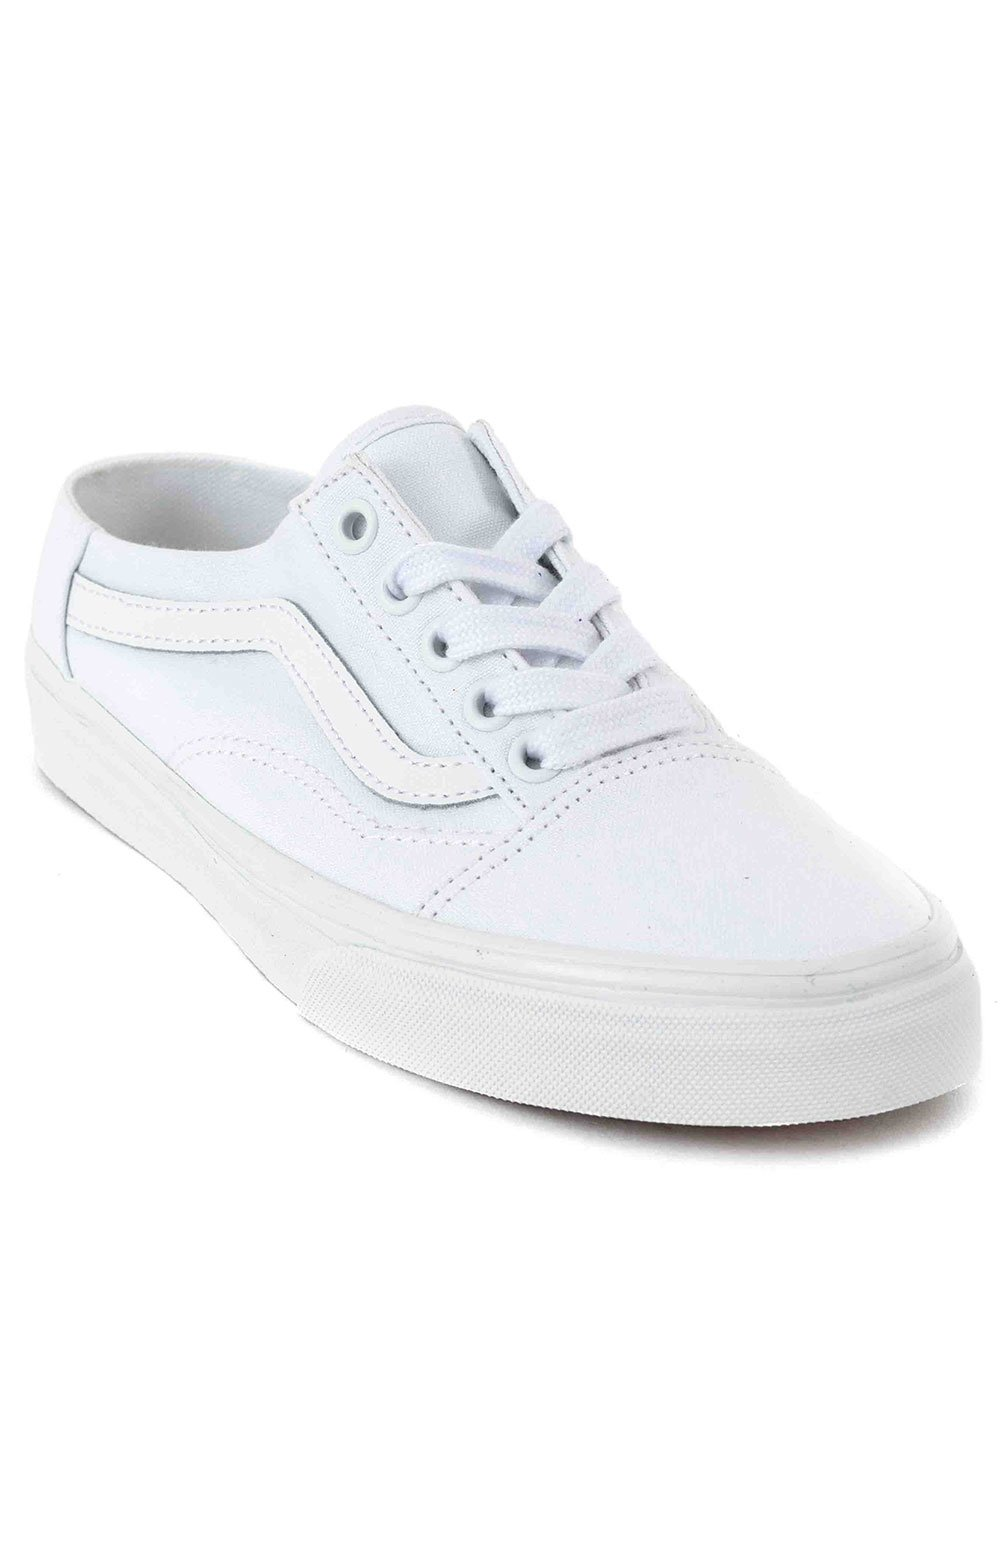 (P3YWC6) Old Skool Mule Shoe - White/True White 3